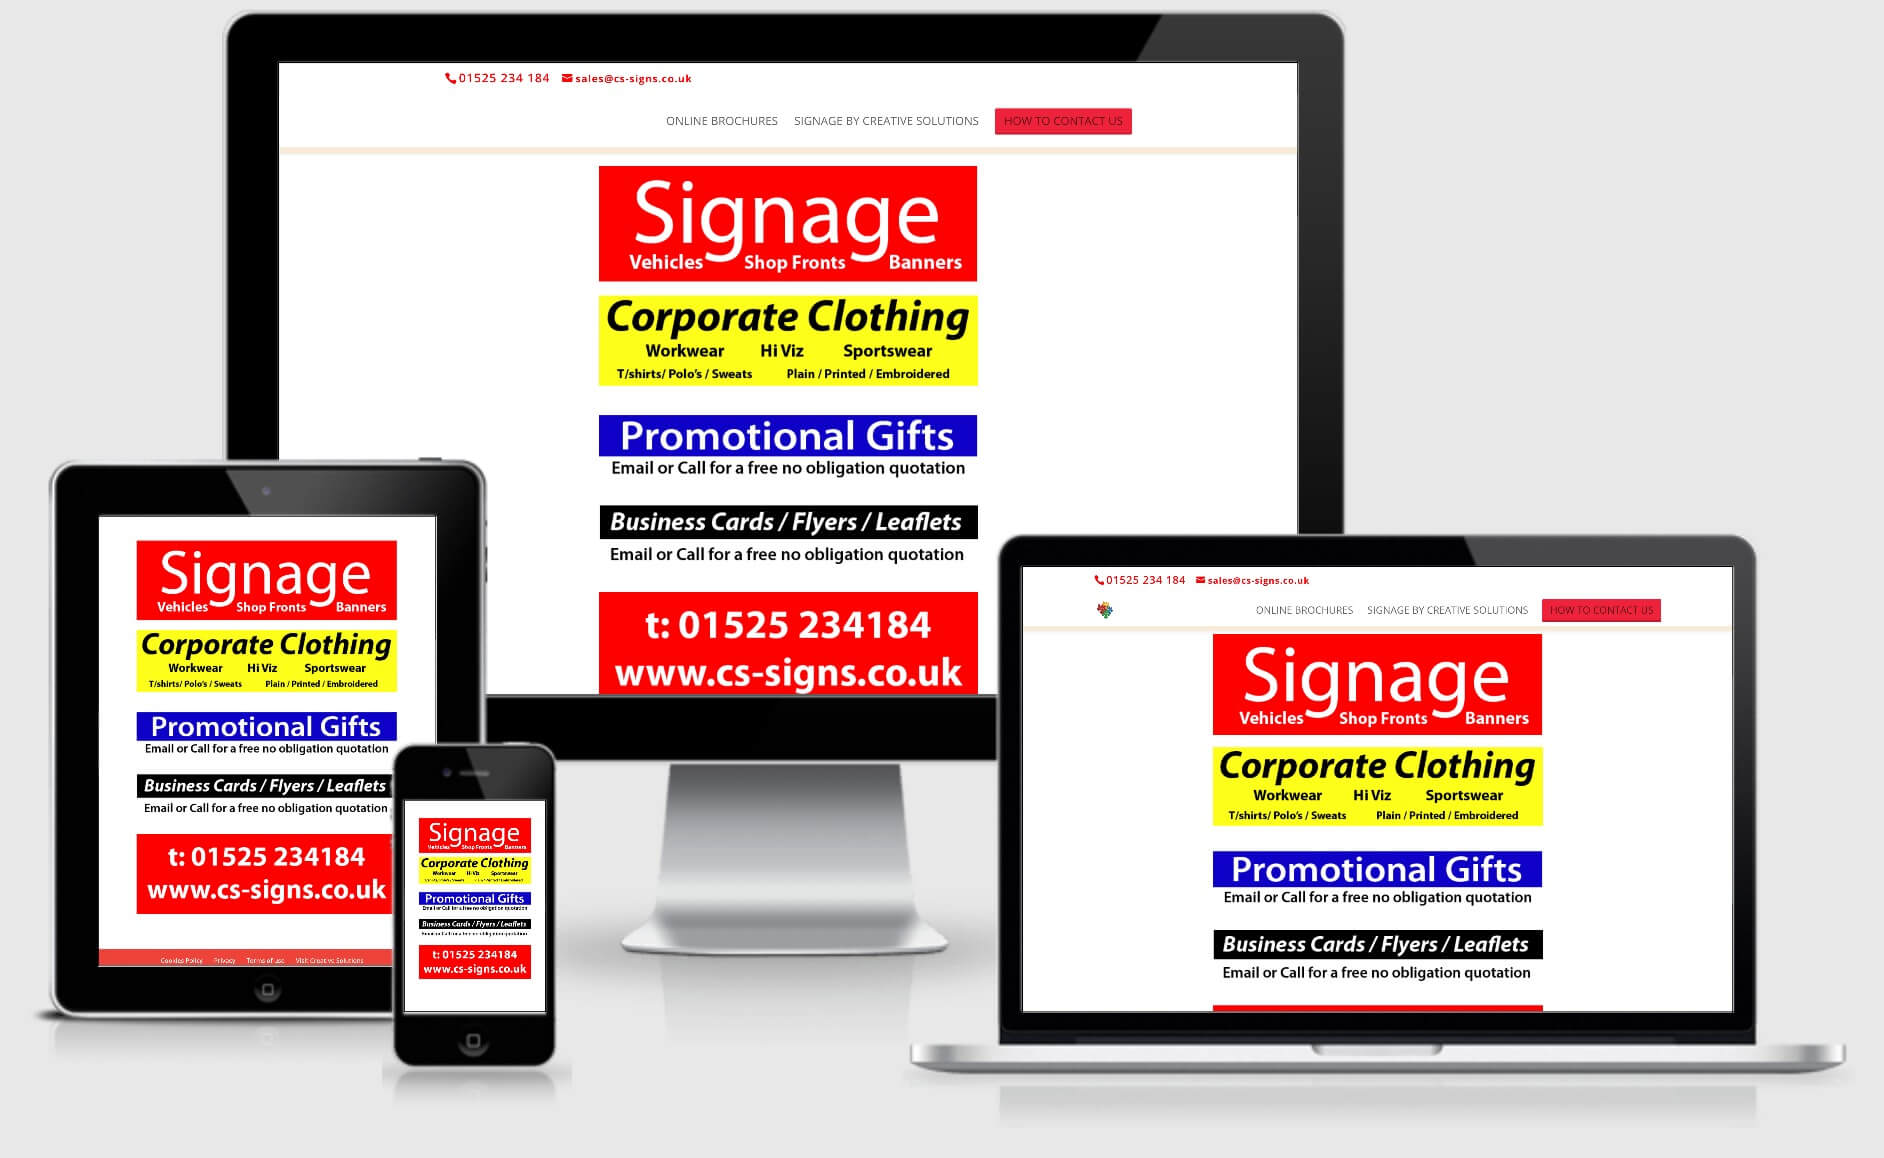 C S Signs multi-device views